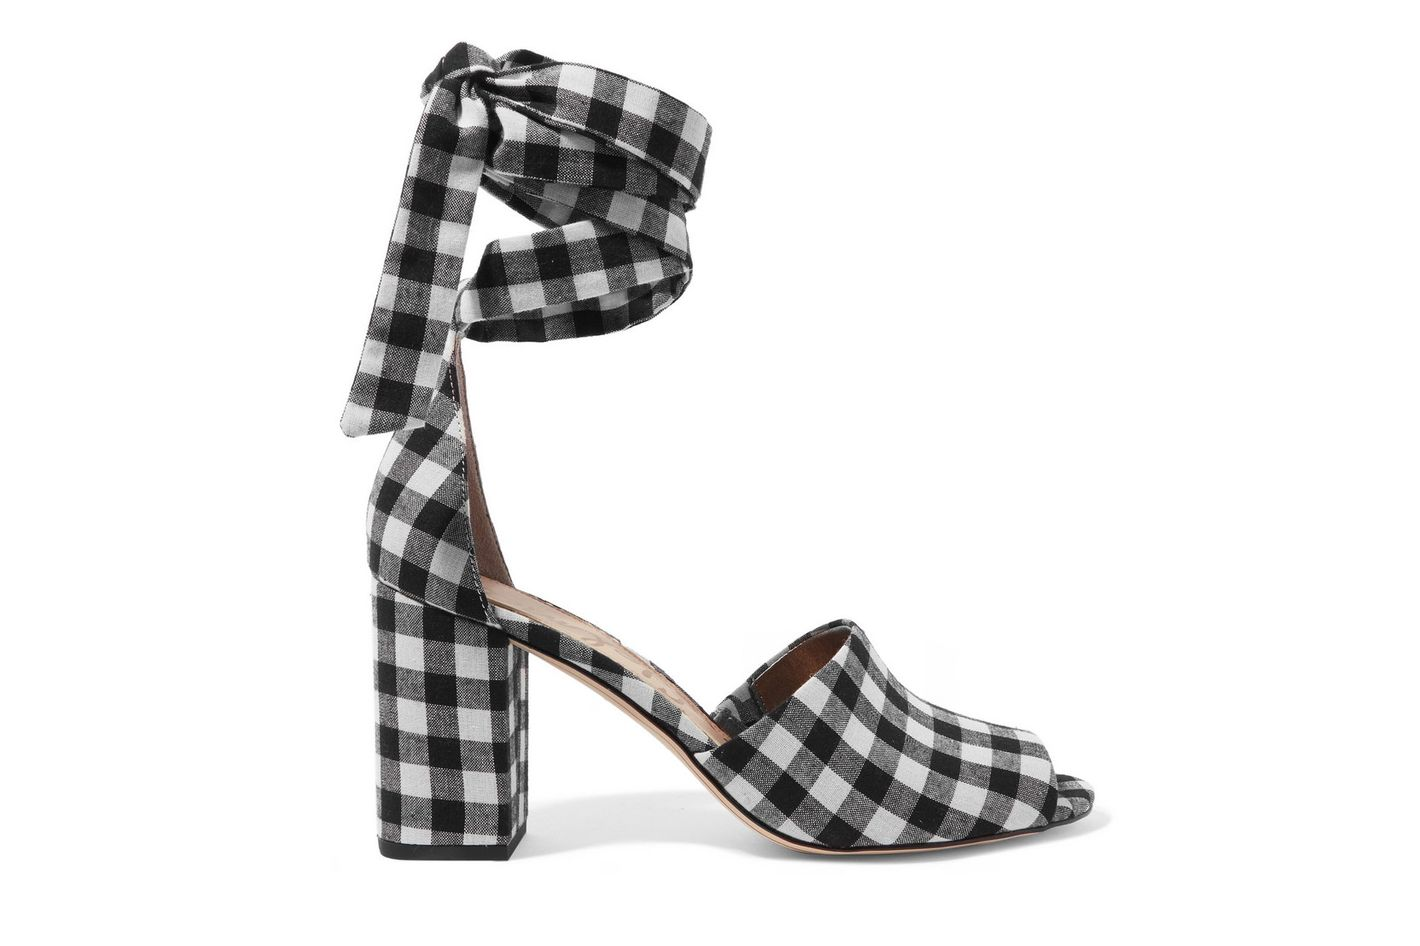 Sam Edelman Gingham Canvas Sandals